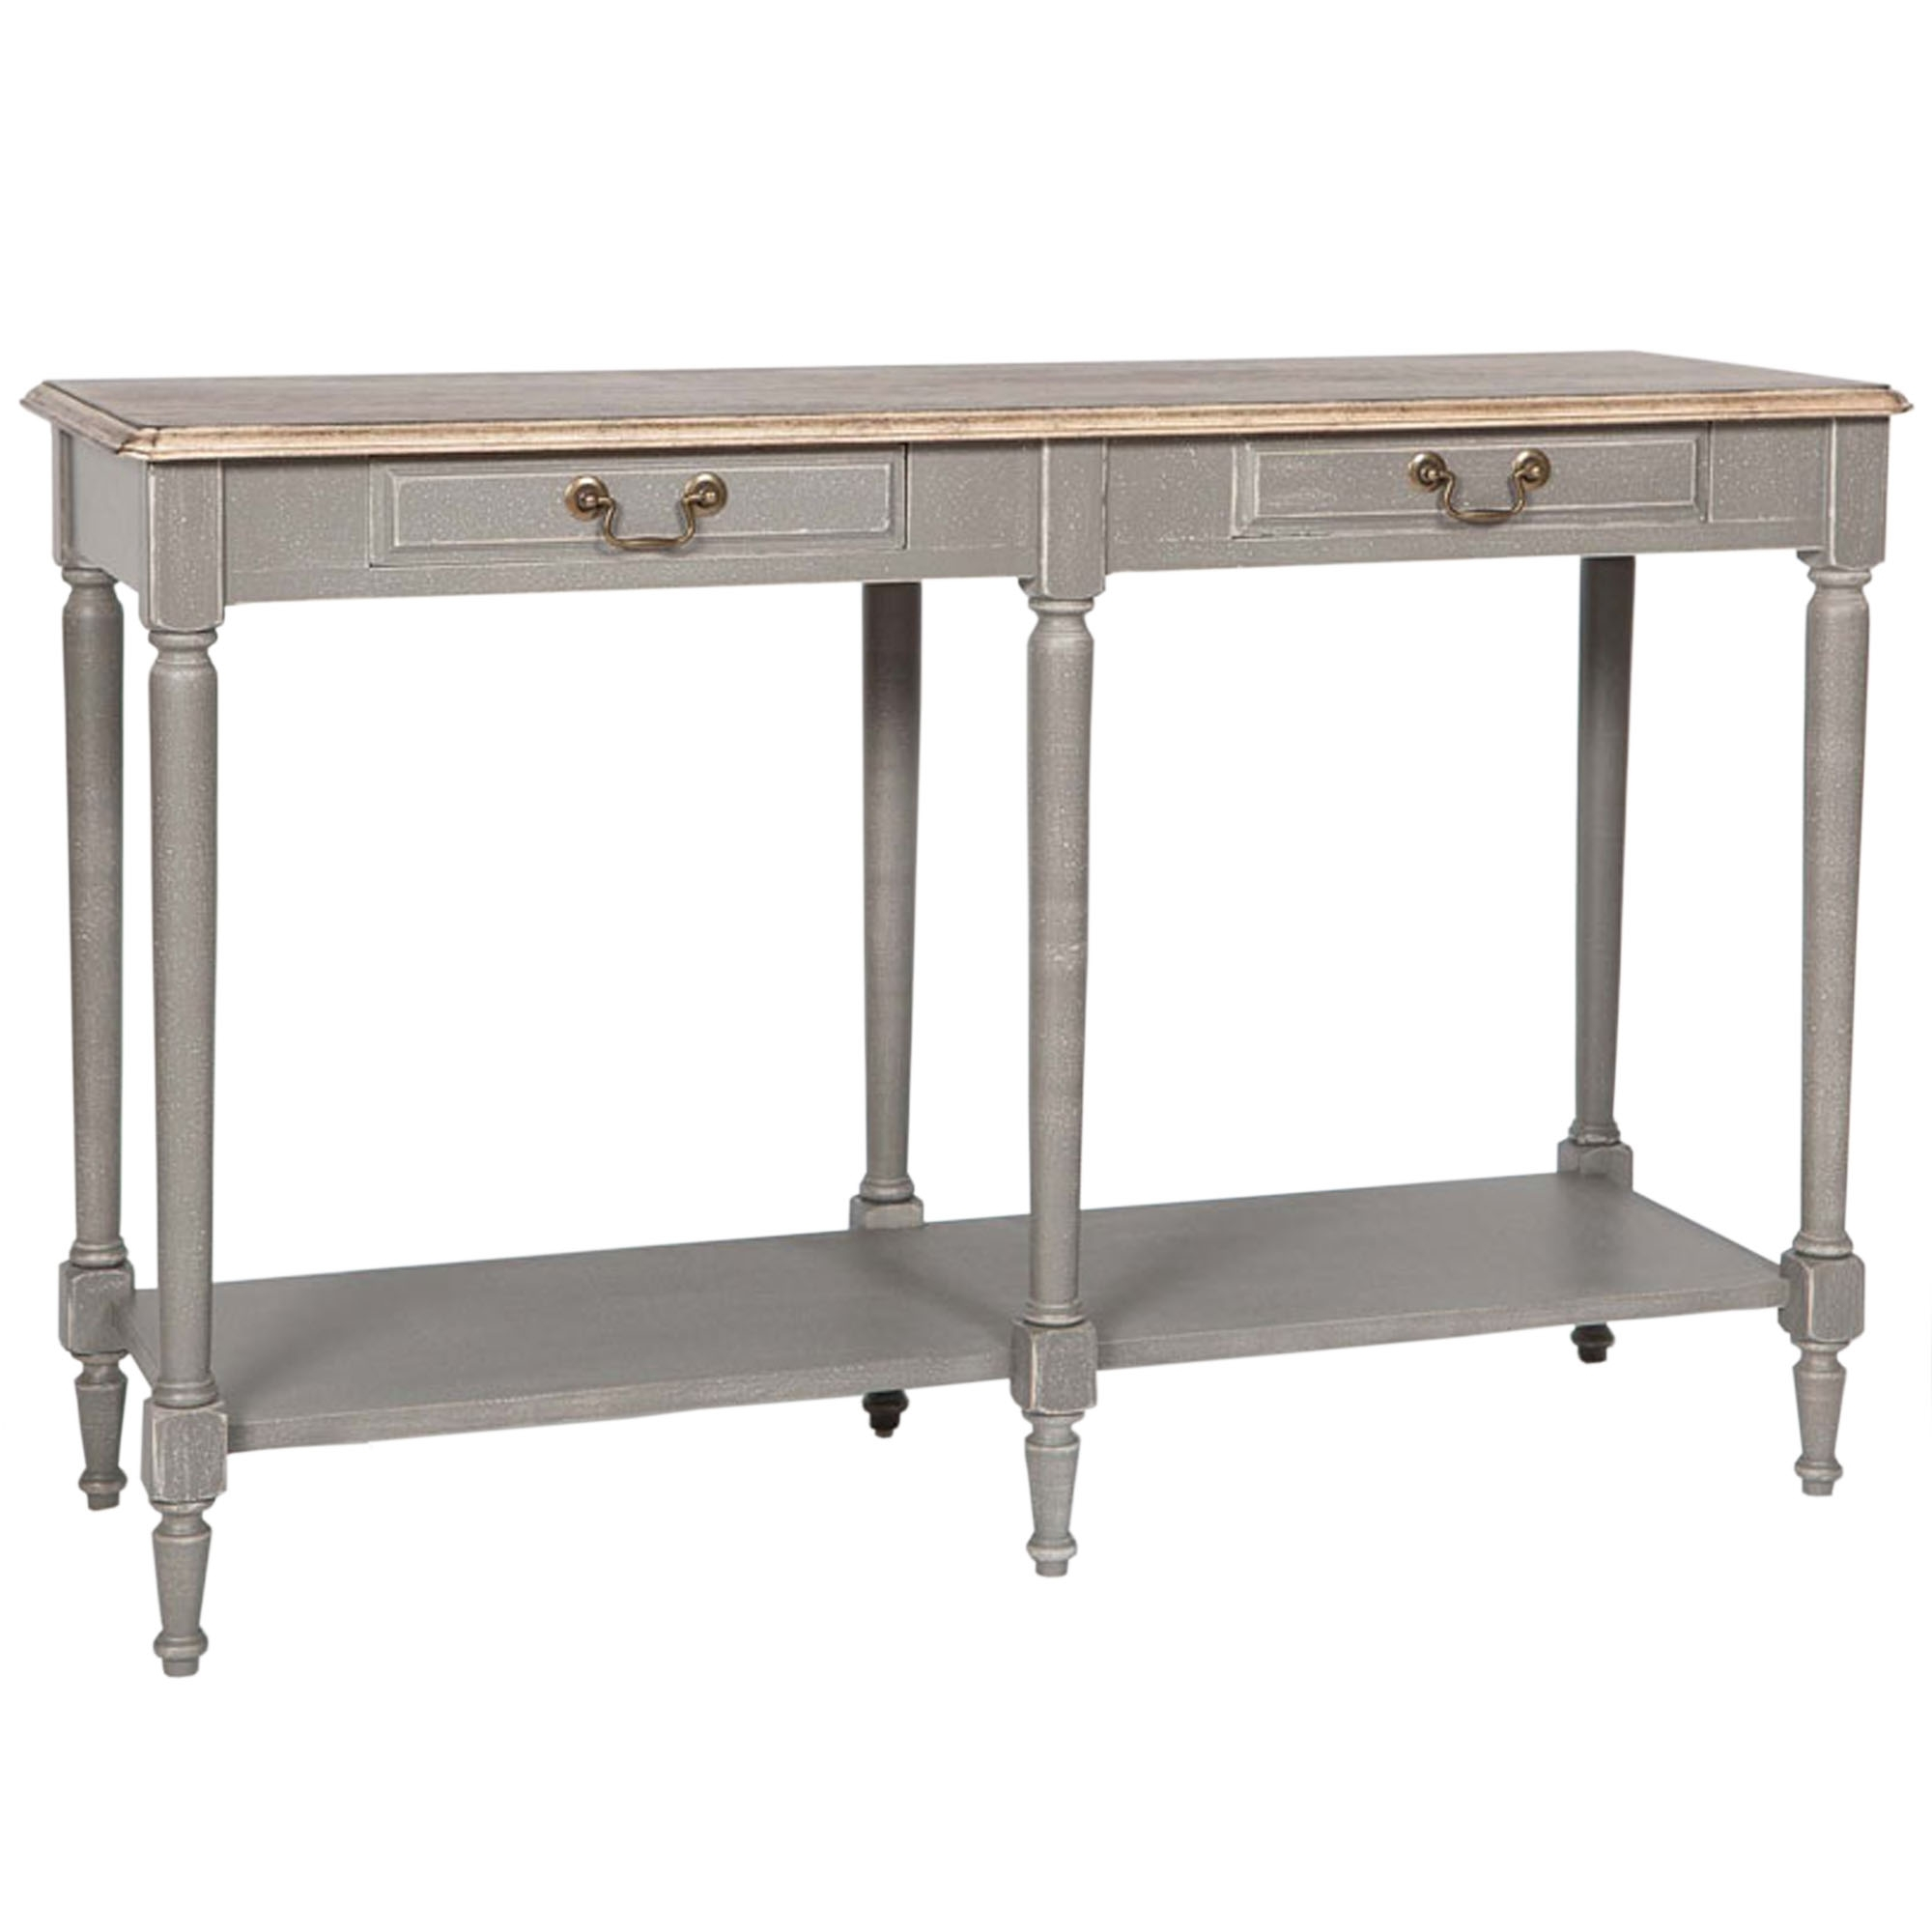 Poitiers grey shabby chic drawer large console table